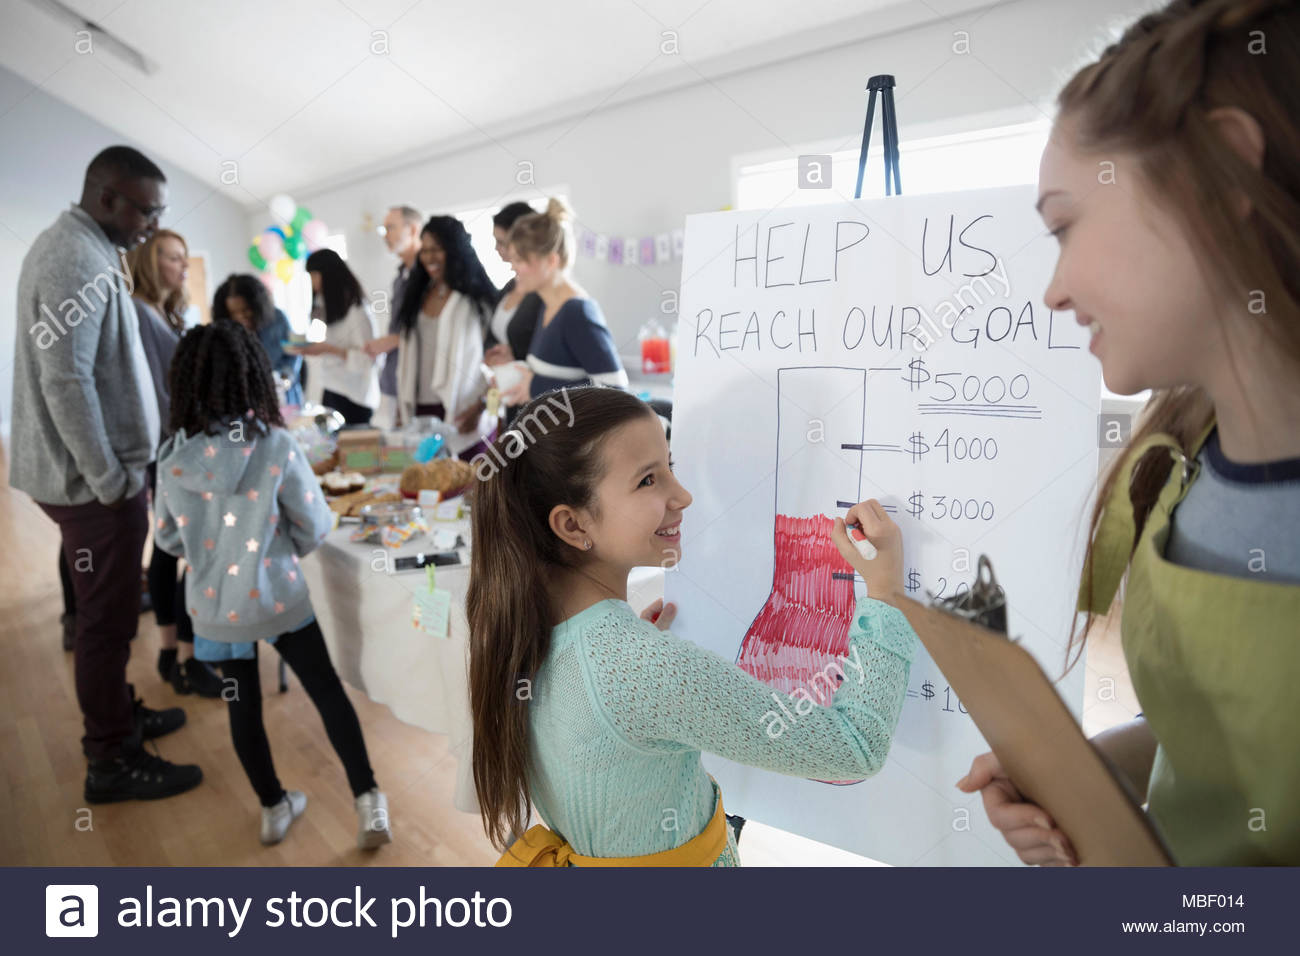 Girls filling in fundraising goal poster at bake sale in community center Stock Photo